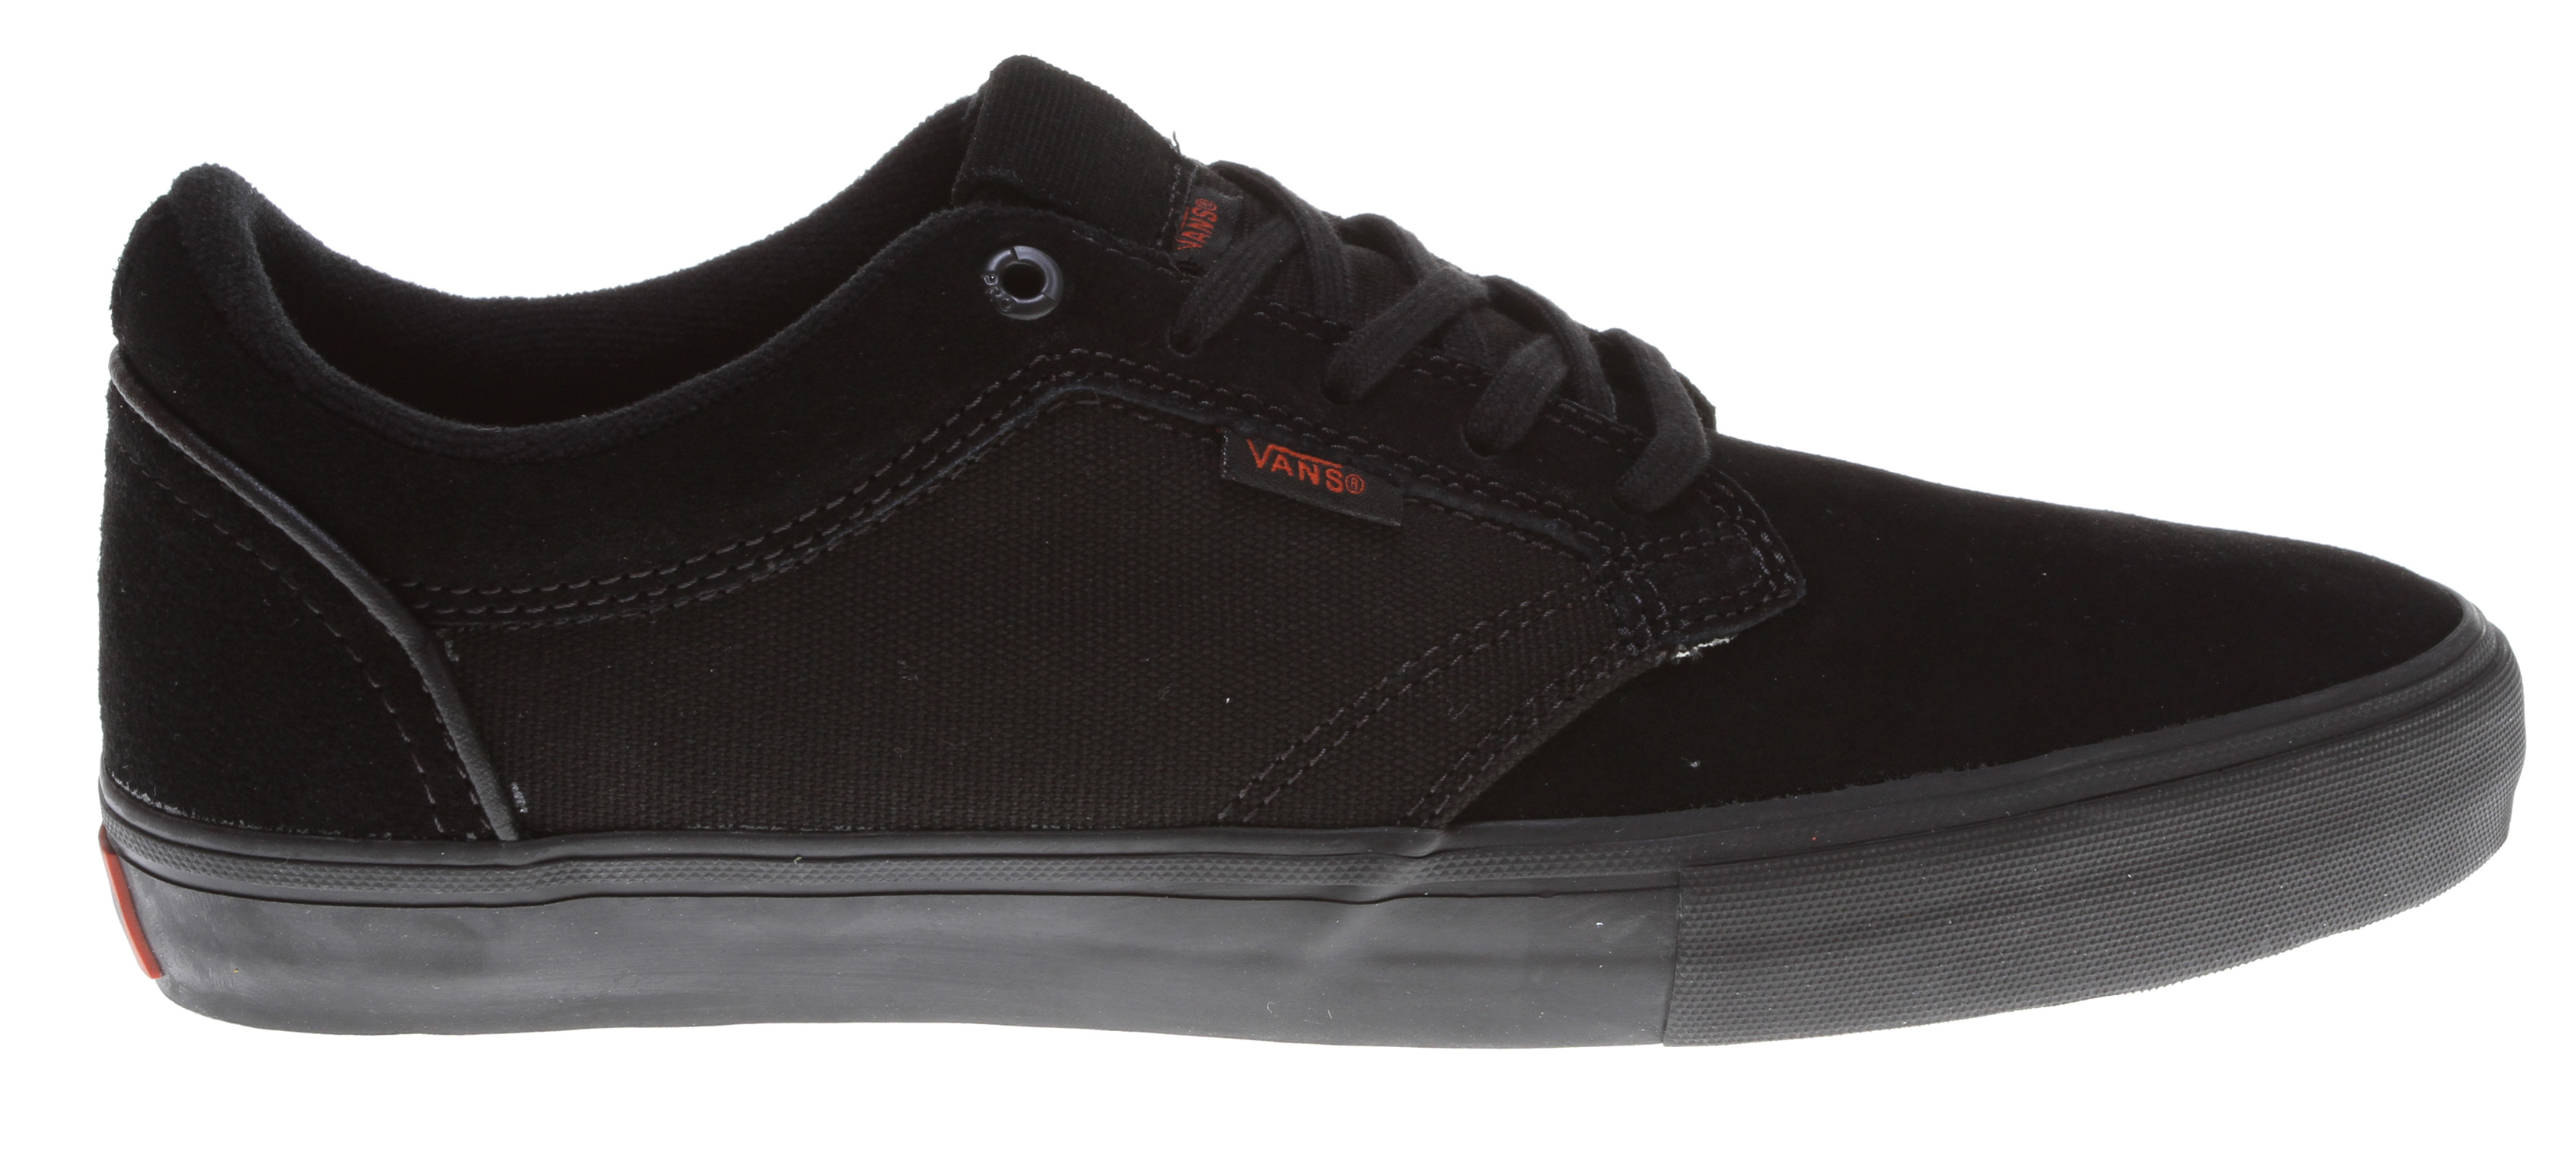 Skateboard Key Features of the Vans Type II Skate Shoes: PRO SKATE Vulc Construction CMEVA Cushioning Vans Original Waffle Gum Rubber Outsole Flex & Fit Upper - $41.95